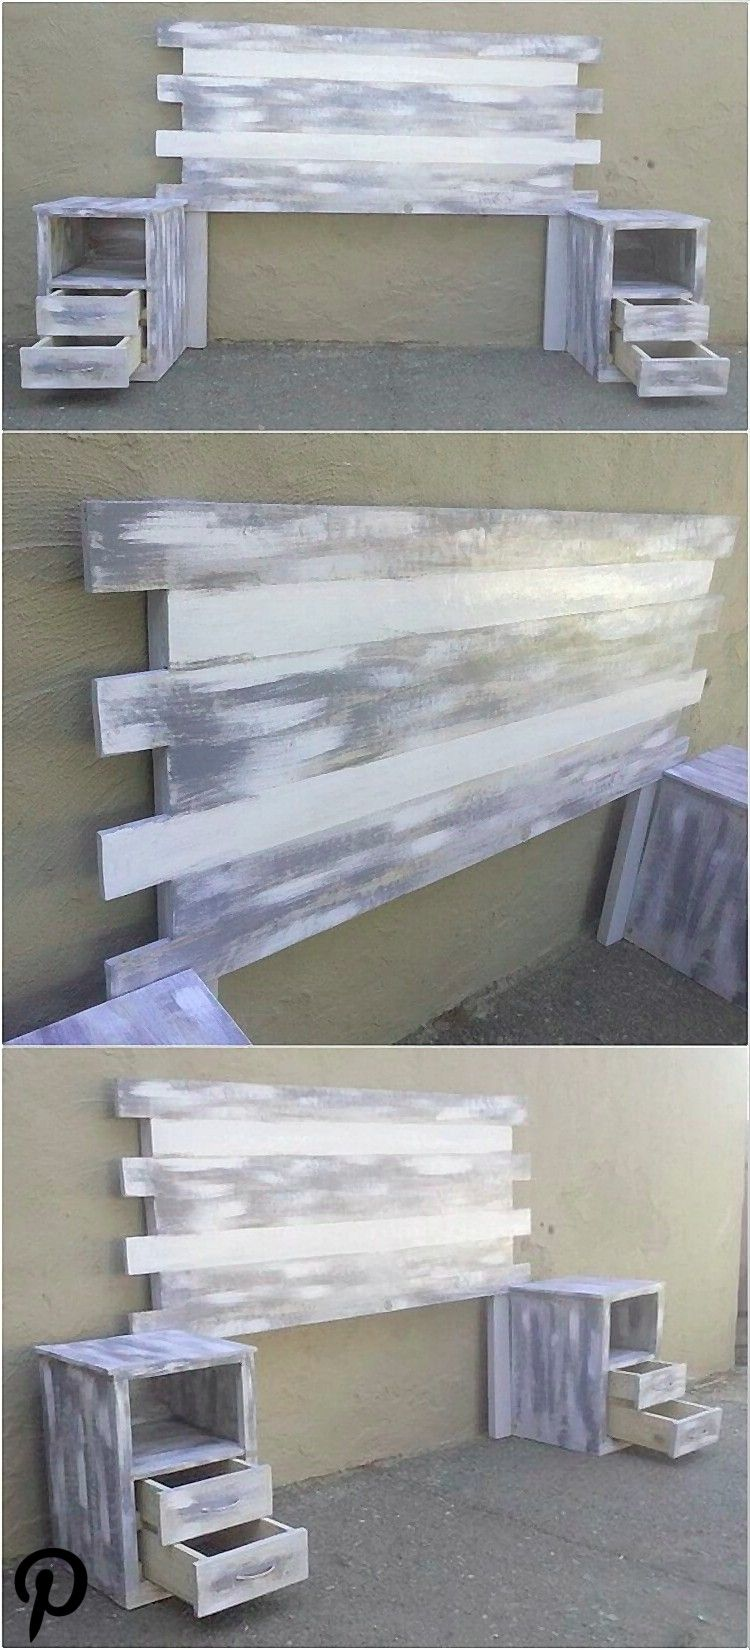 Distressed Color Wooden Pallet Headboard Idea Here we have idea for you to make a classic headboard Distressed Color Wooden Pallet Headboard Idea Here we have idea for yo...